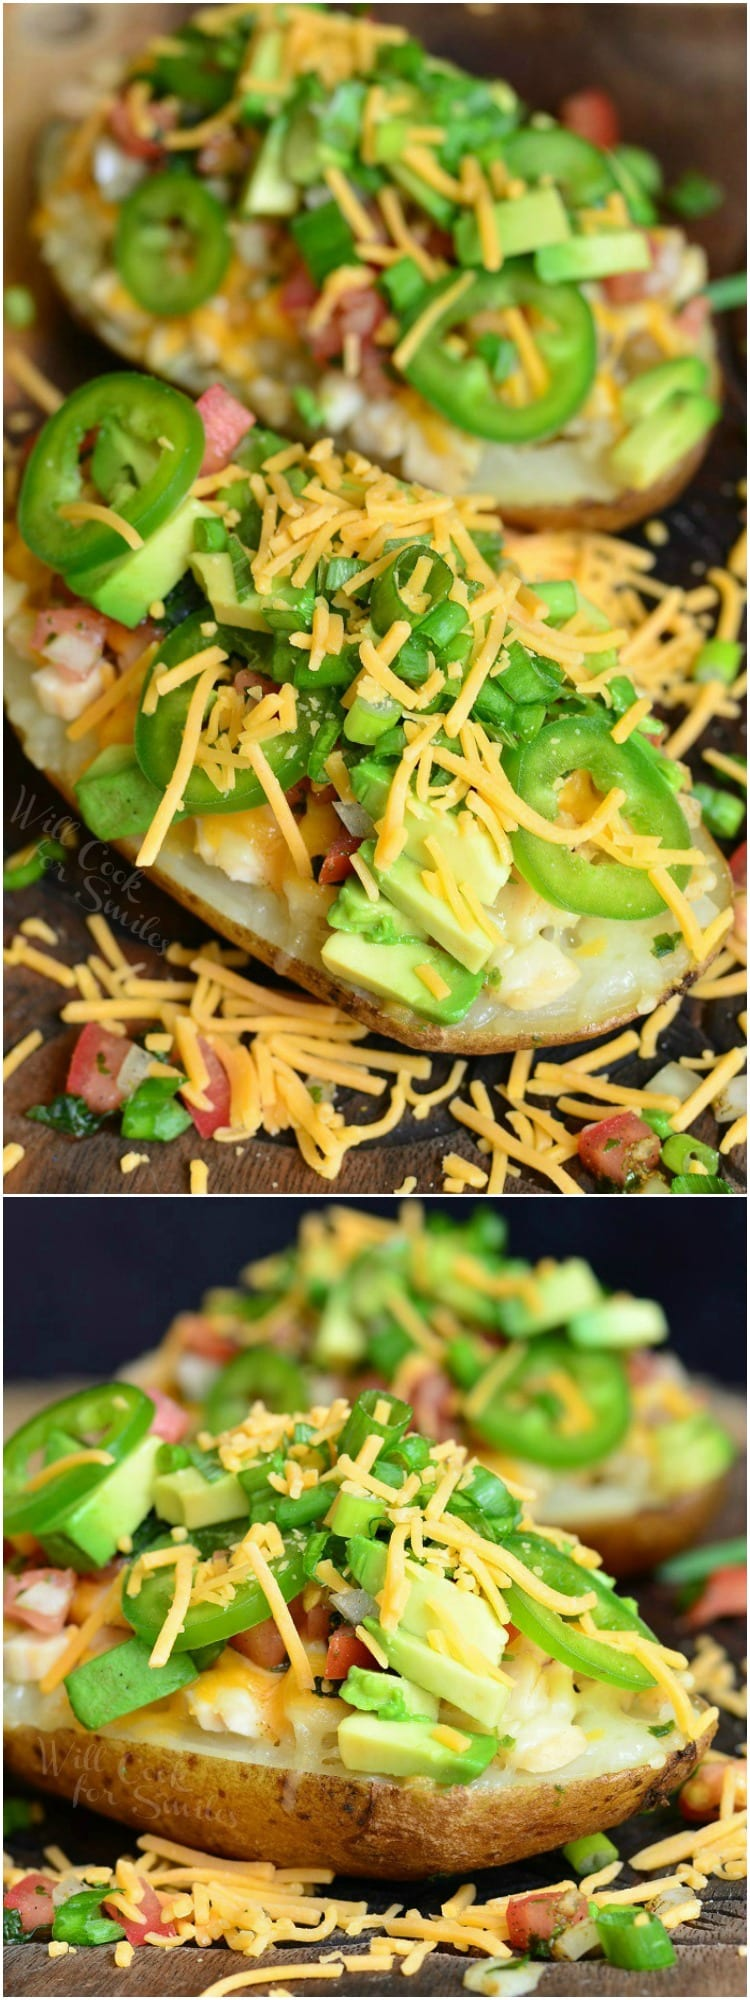 Twice Baked Potatoes with cheese, green onions, jalapenos, and avocado